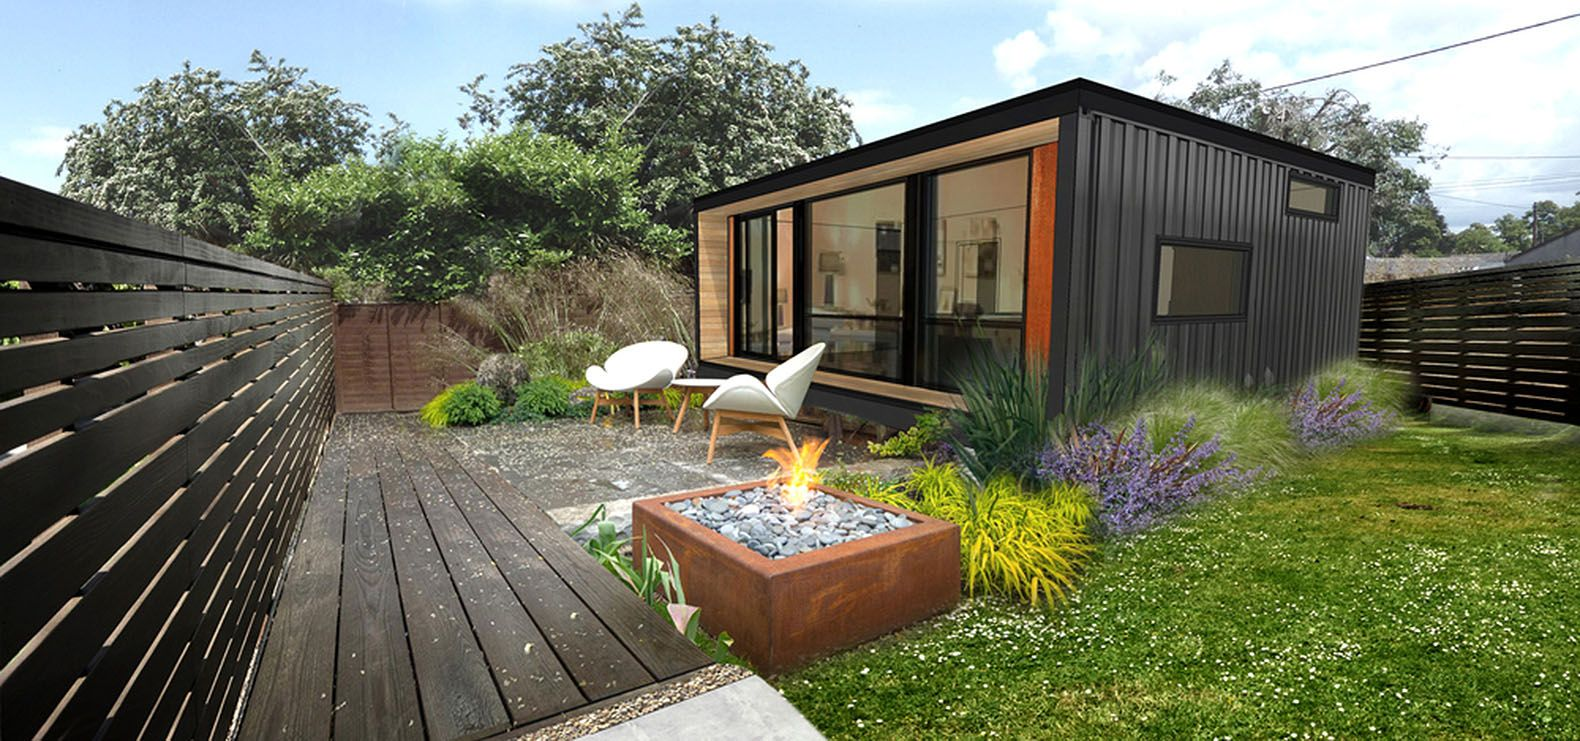 you can order honomobos prefab shipping container homes online - Versand Container Huser Plne Pdf